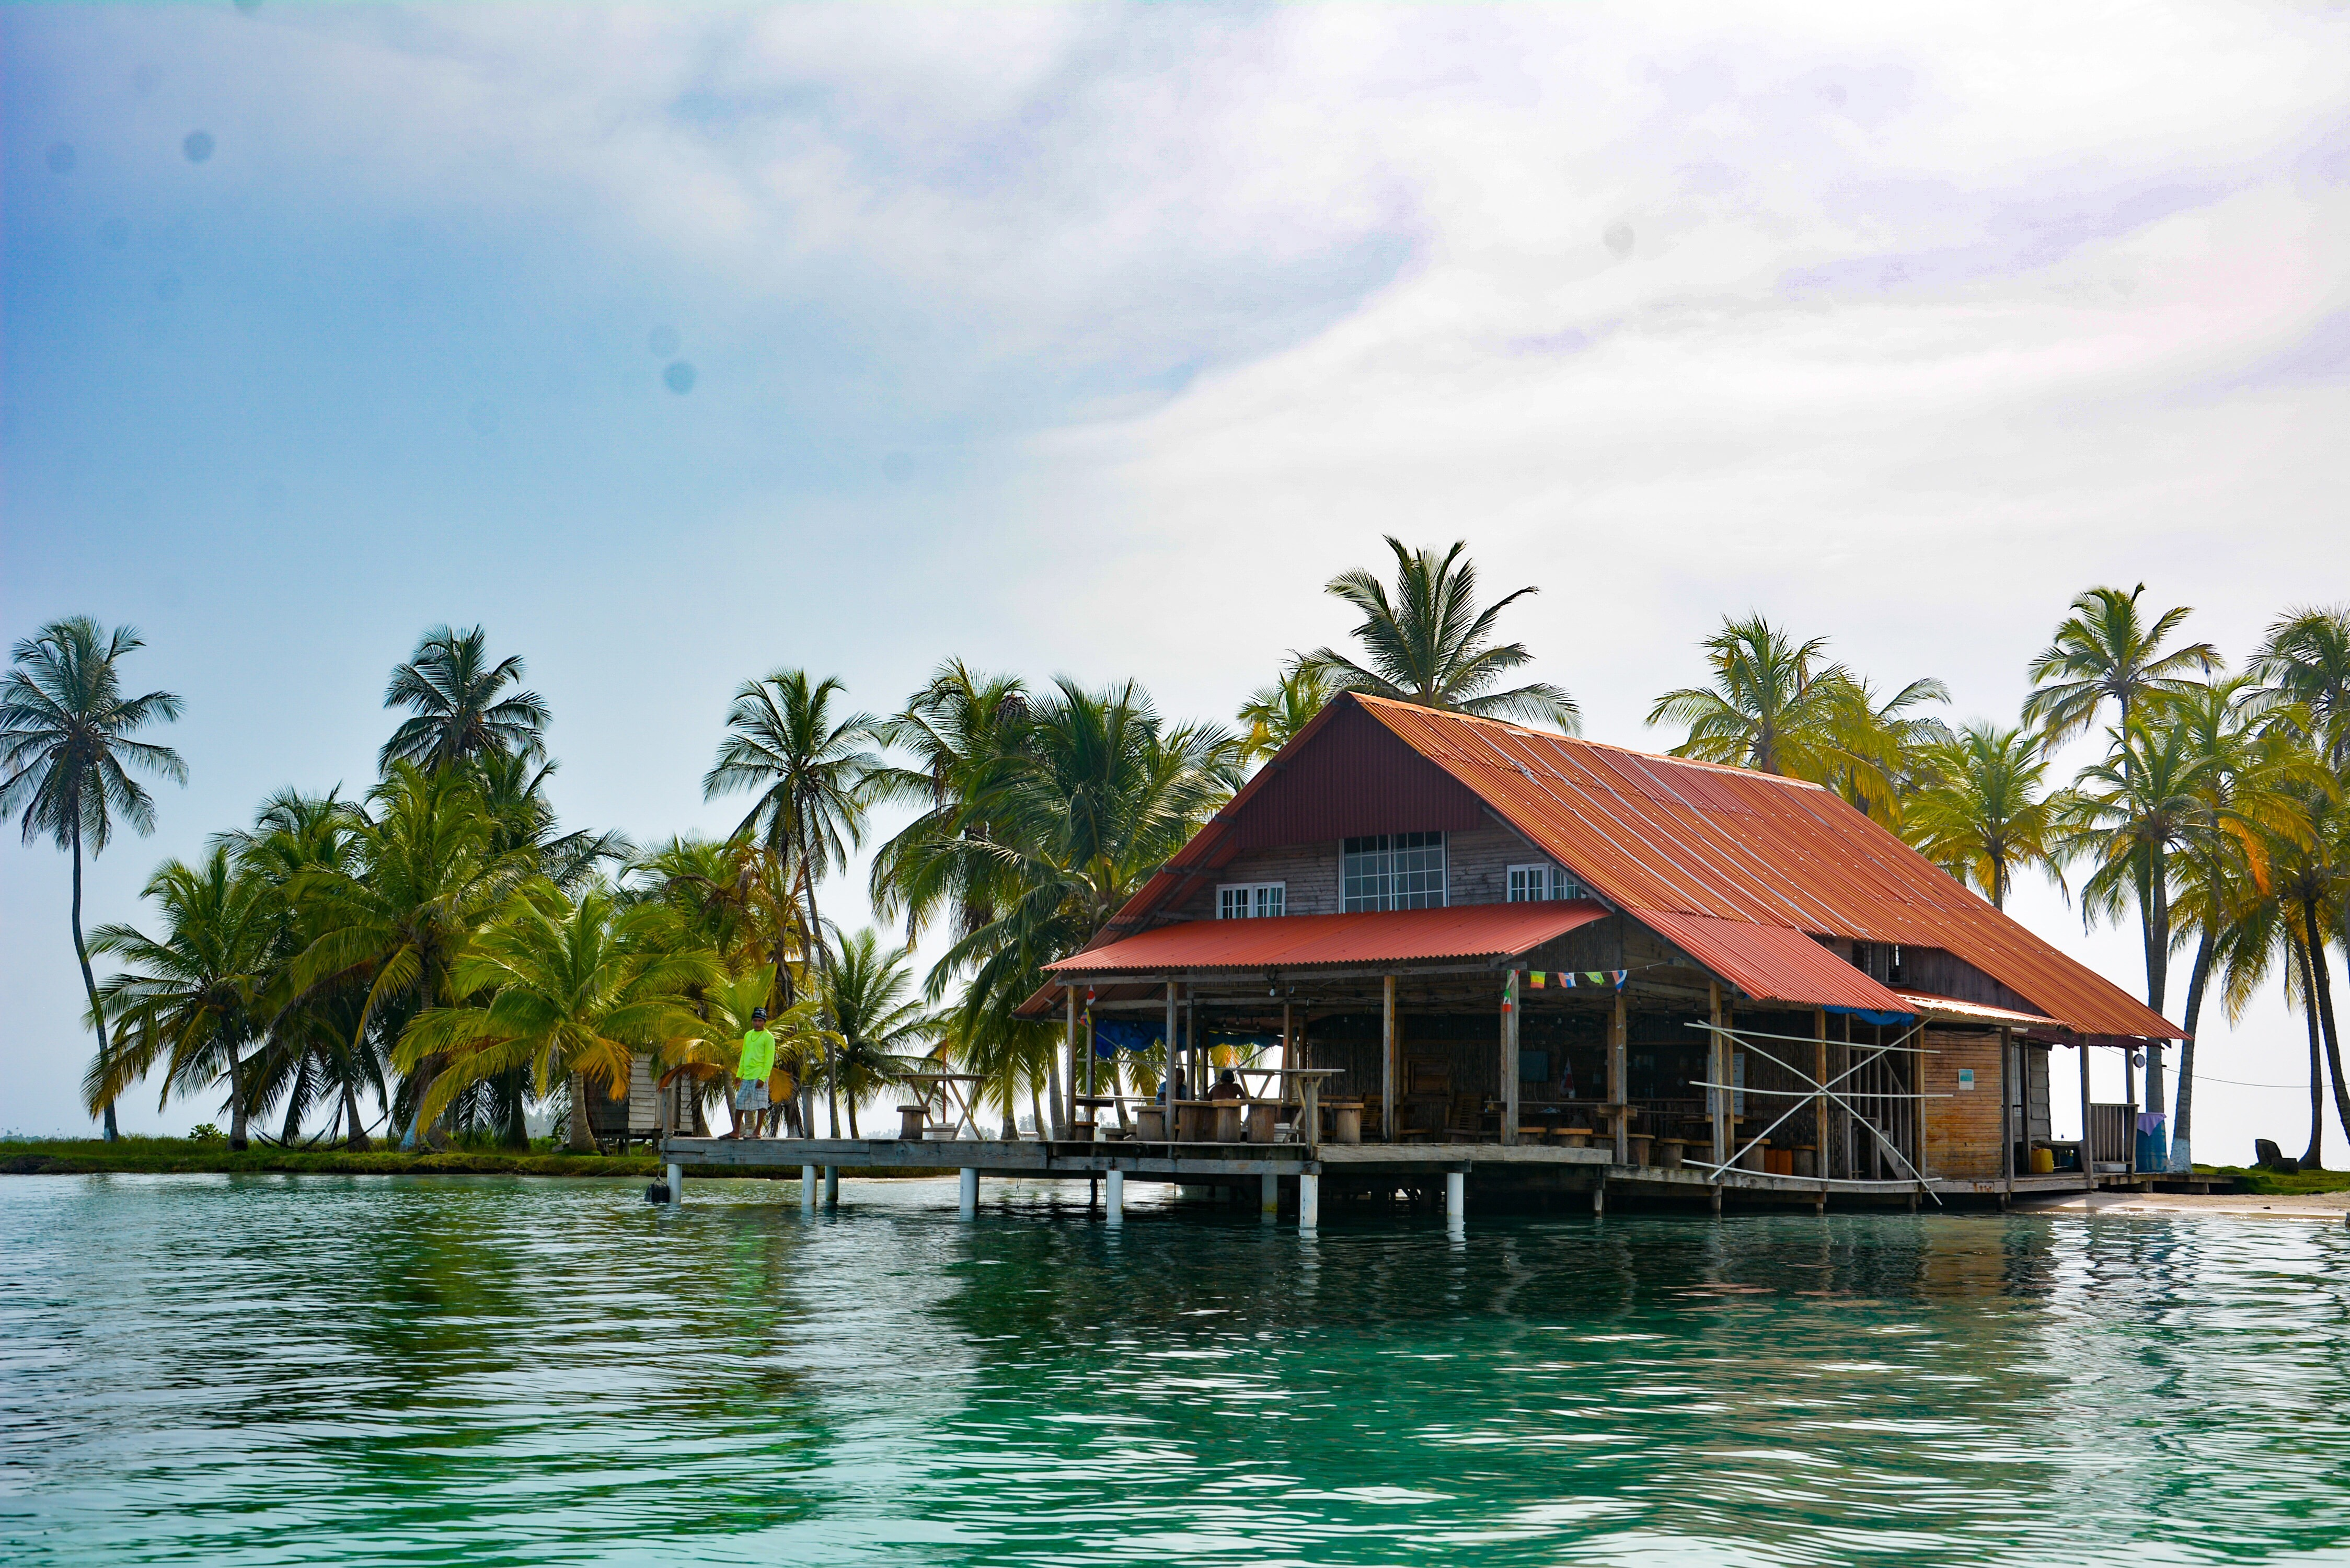 A Guide to Panama's San Blas Islands